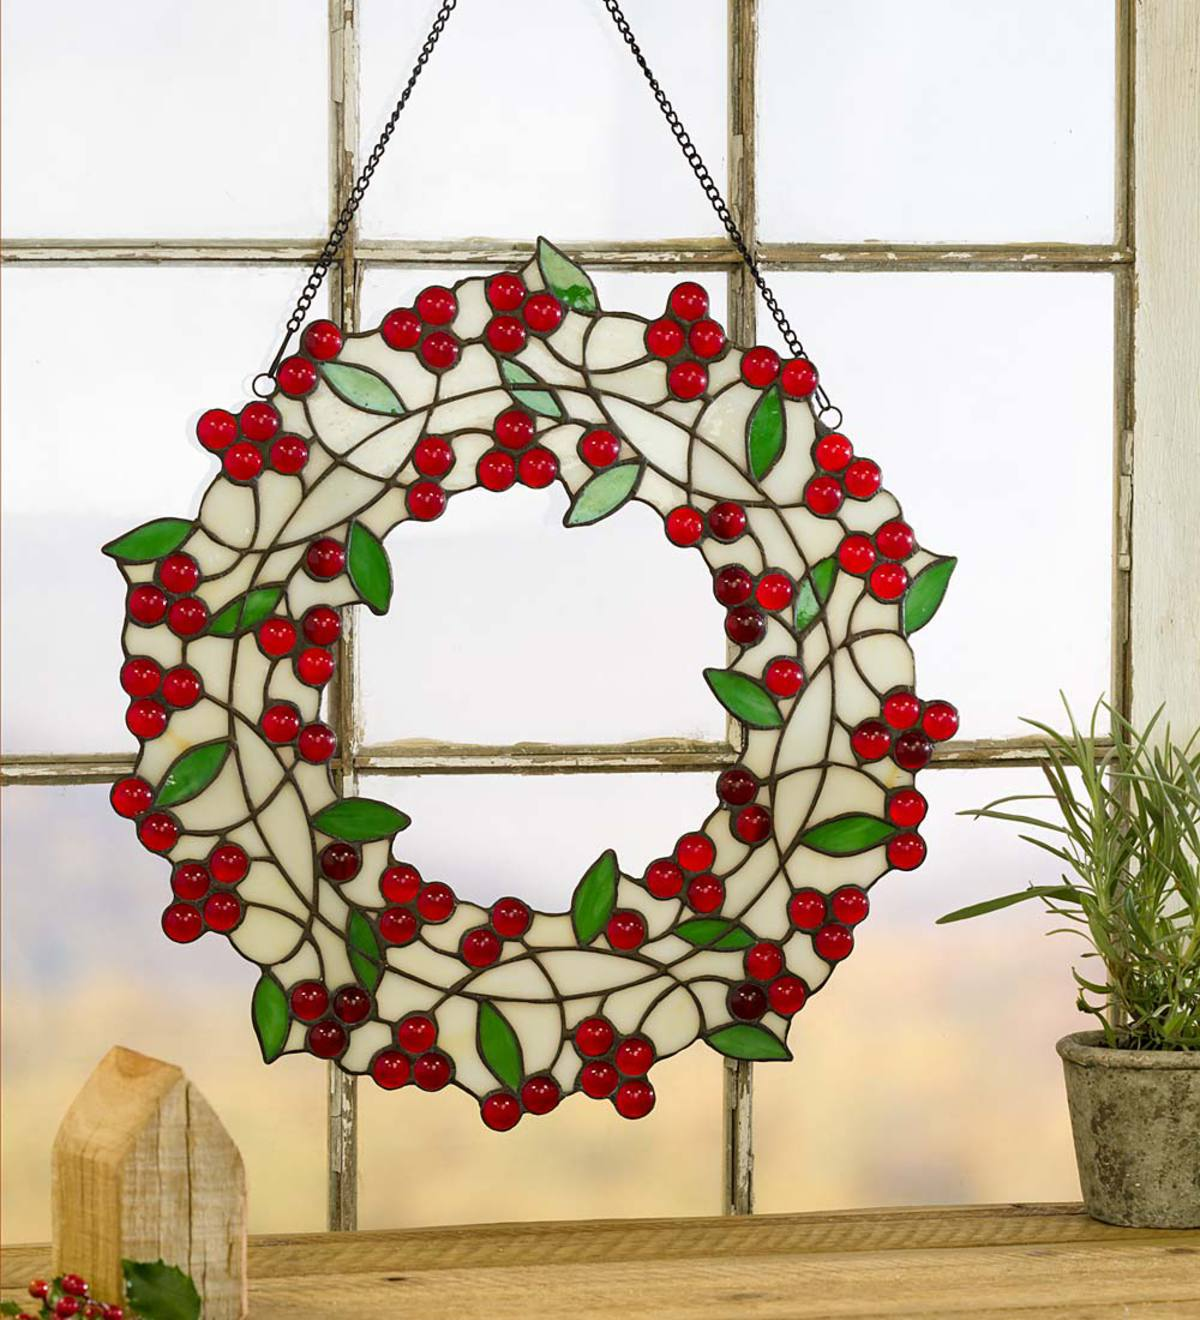 handpainted art clingstained glass decal Holly and Pine Christmas blue bird wreath